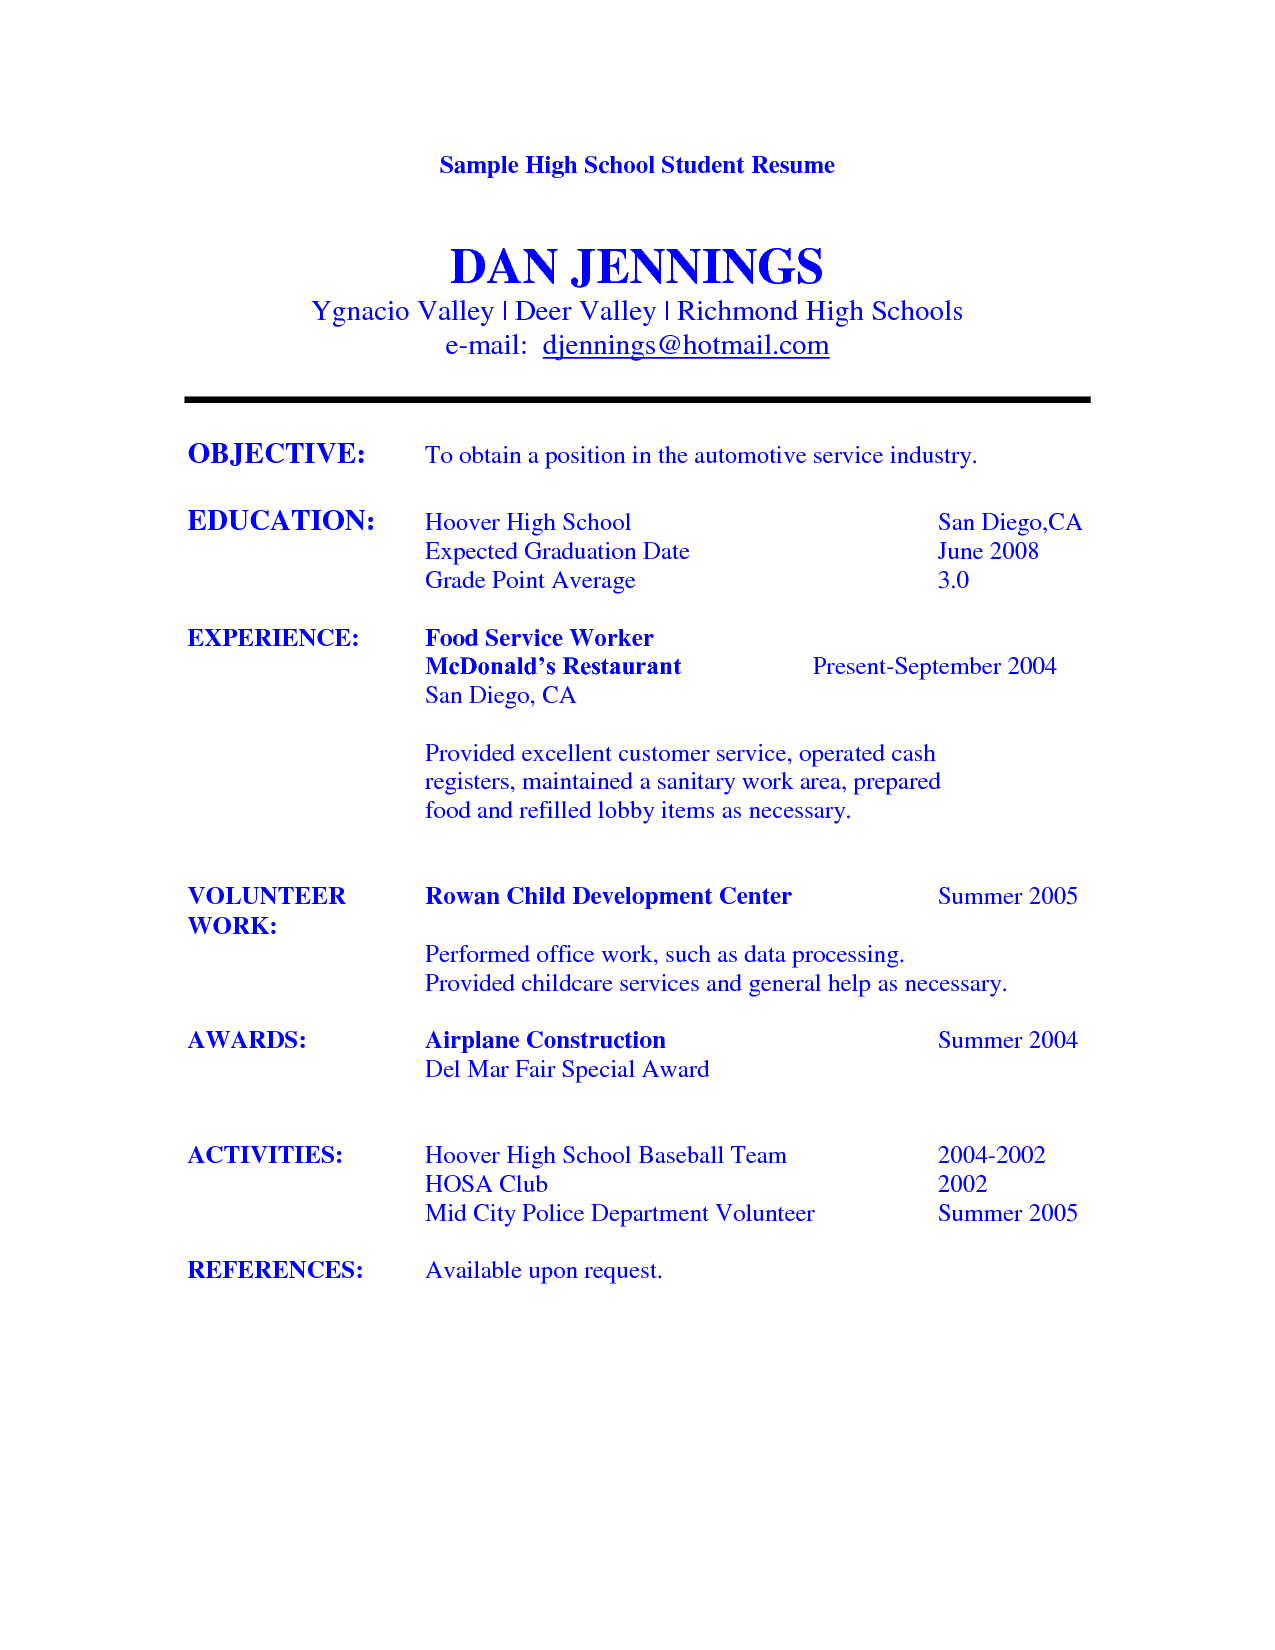 High School Student Resume Template Resume Example For High School Student Sample Resumes  Httpwww